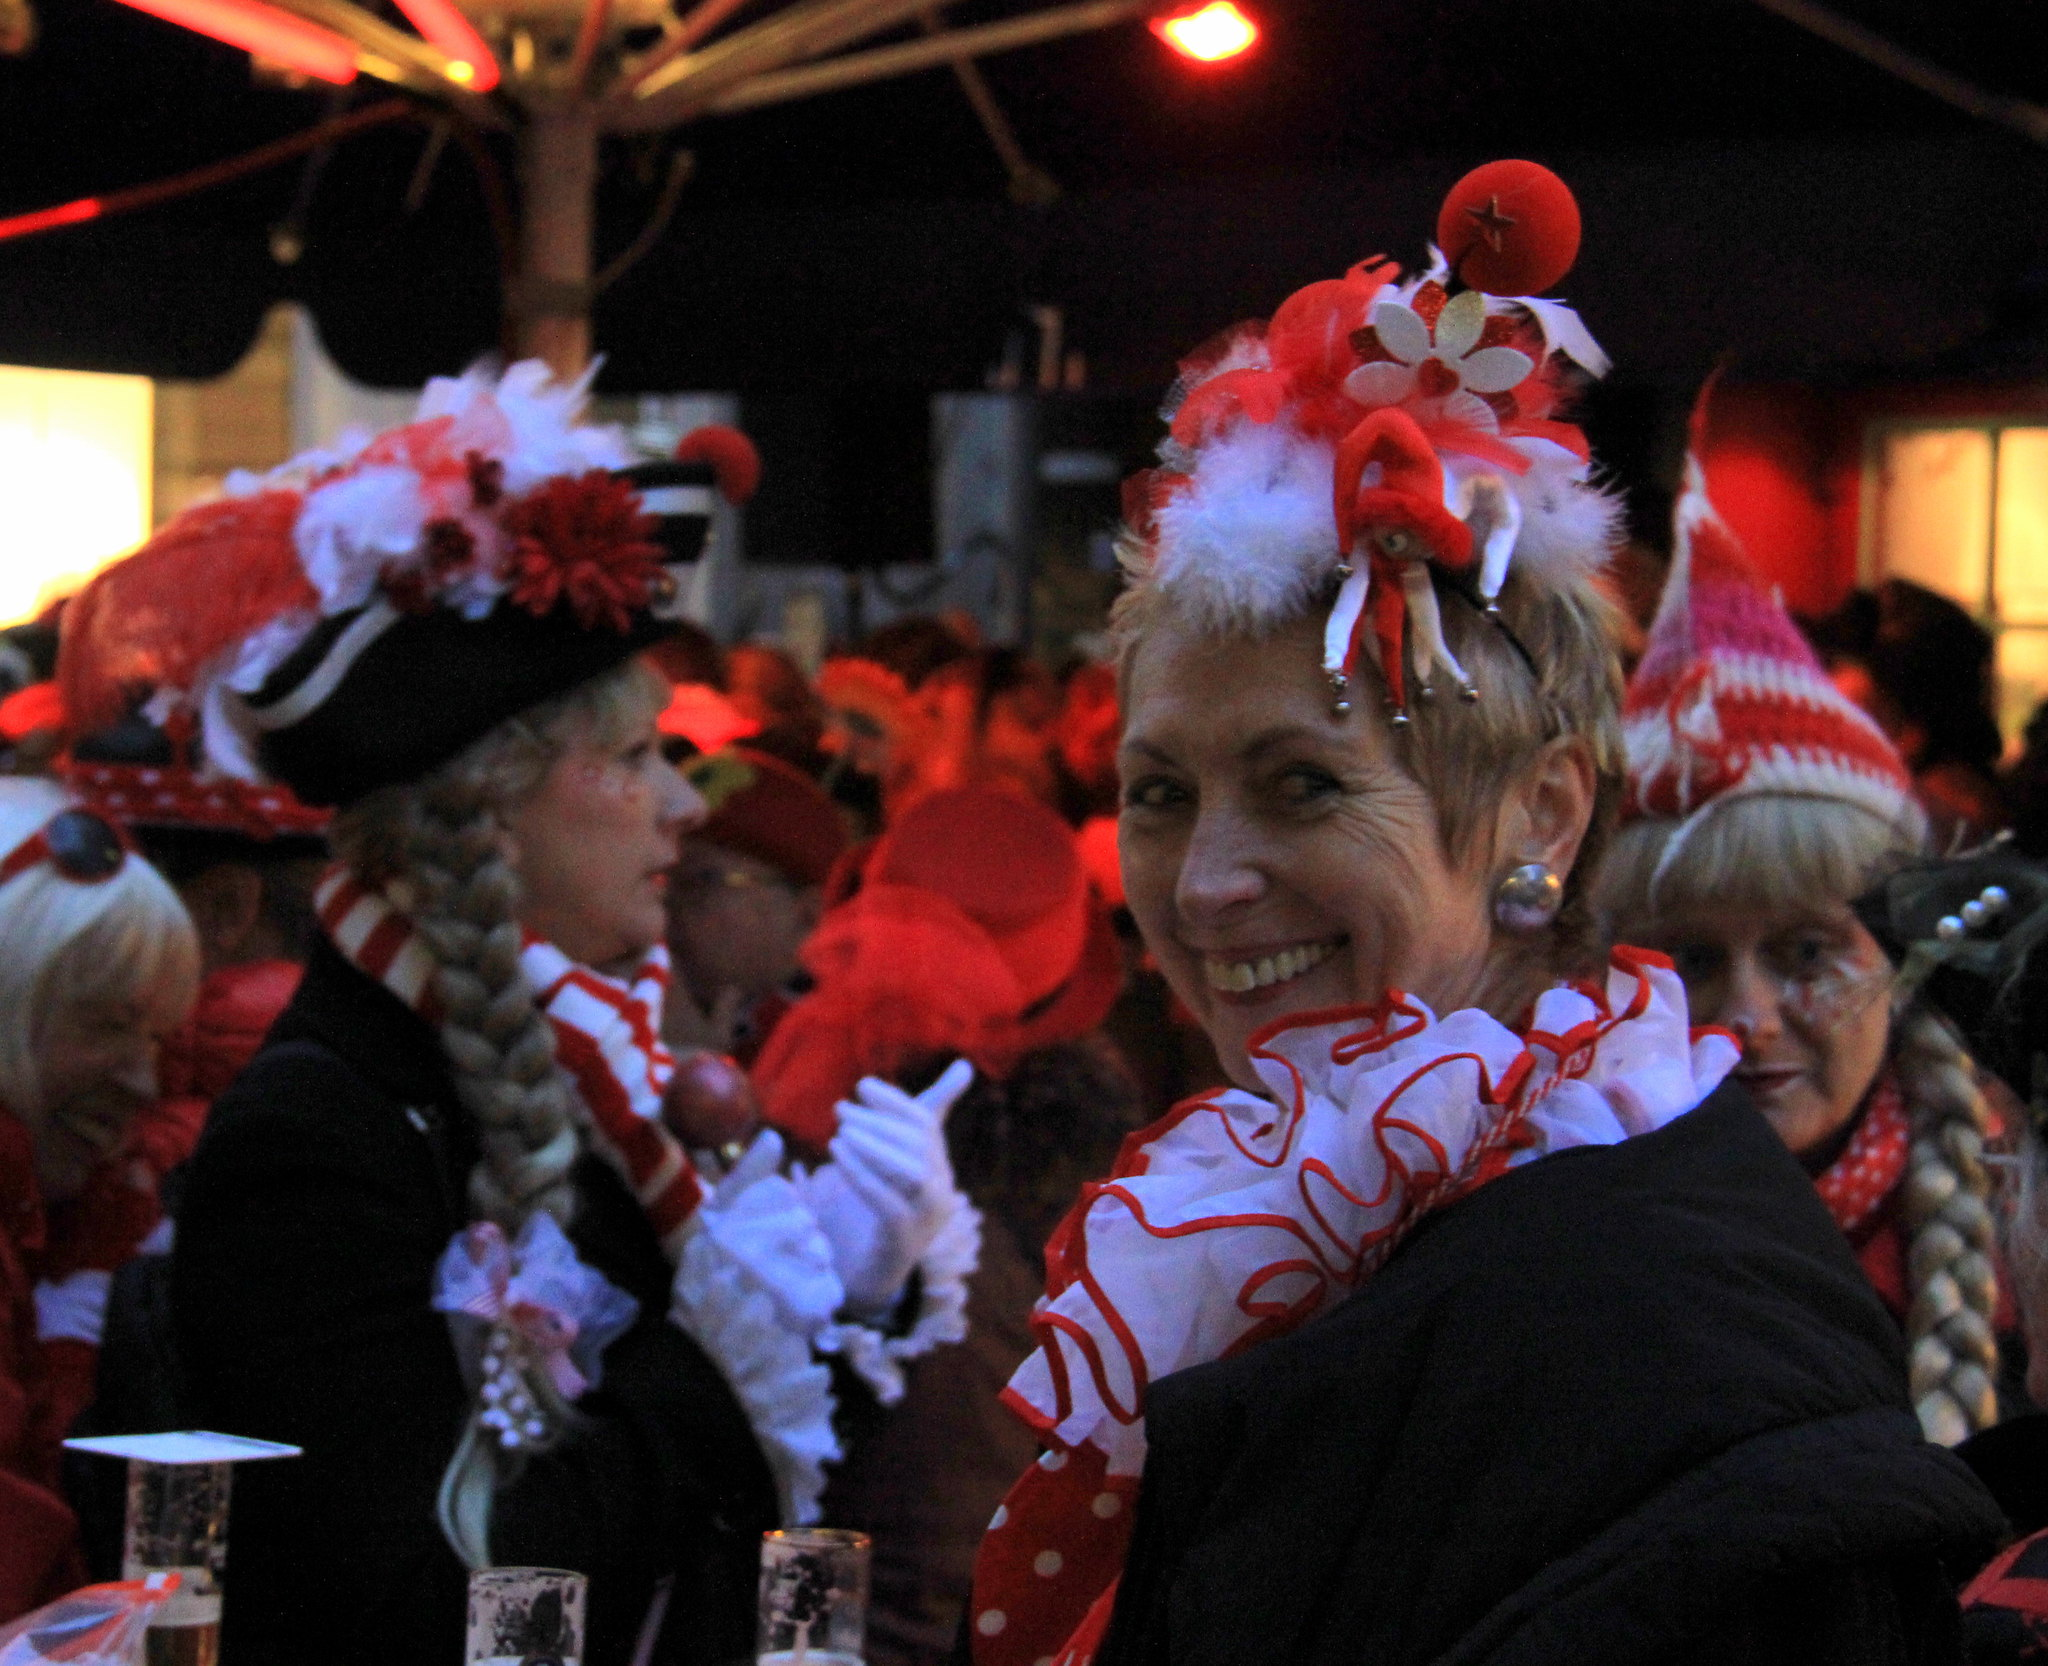 Cologne Carnival kicks off in November